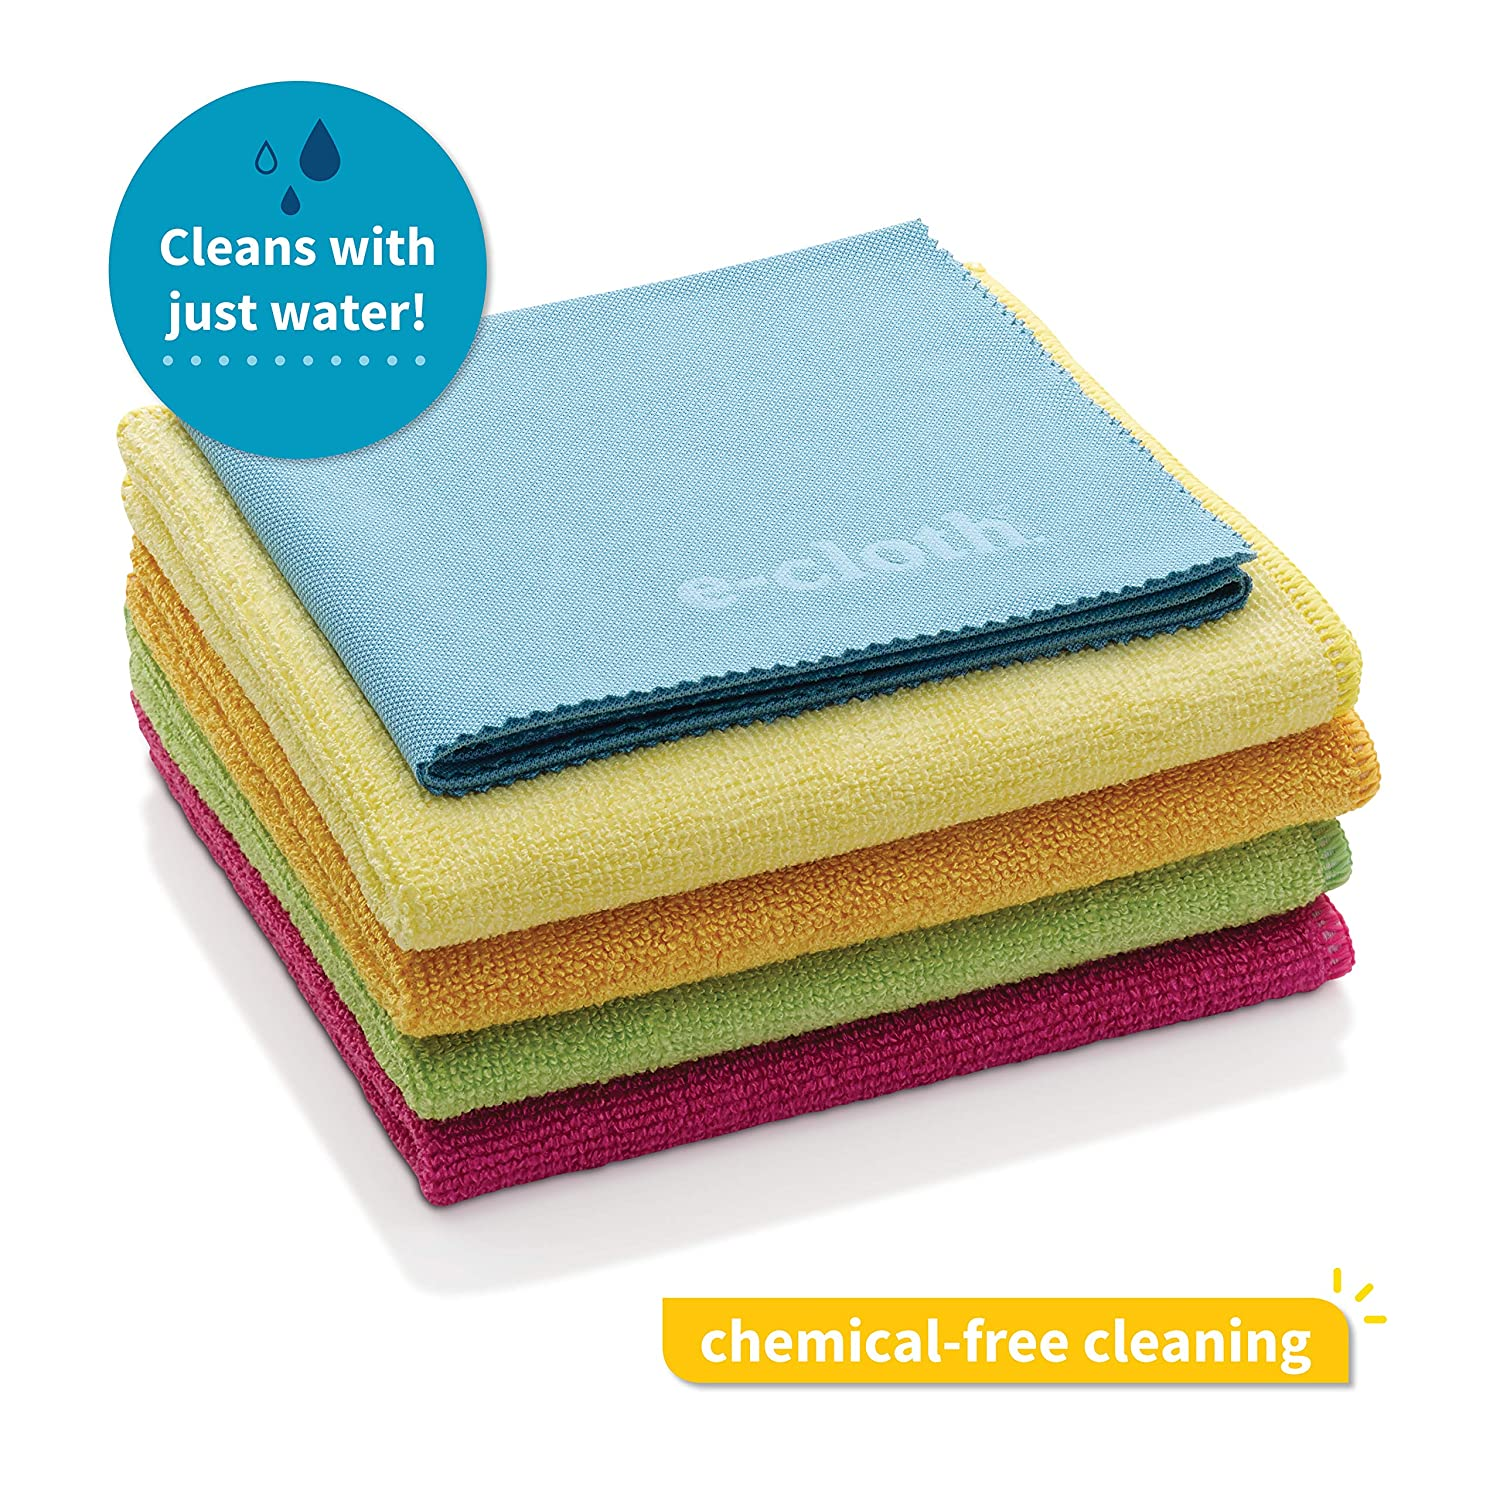 E-Cloth Microfiber Home Cleaning Starter Pack, Chemical-Free Cleaning with Just Water, 5 Cloth Set